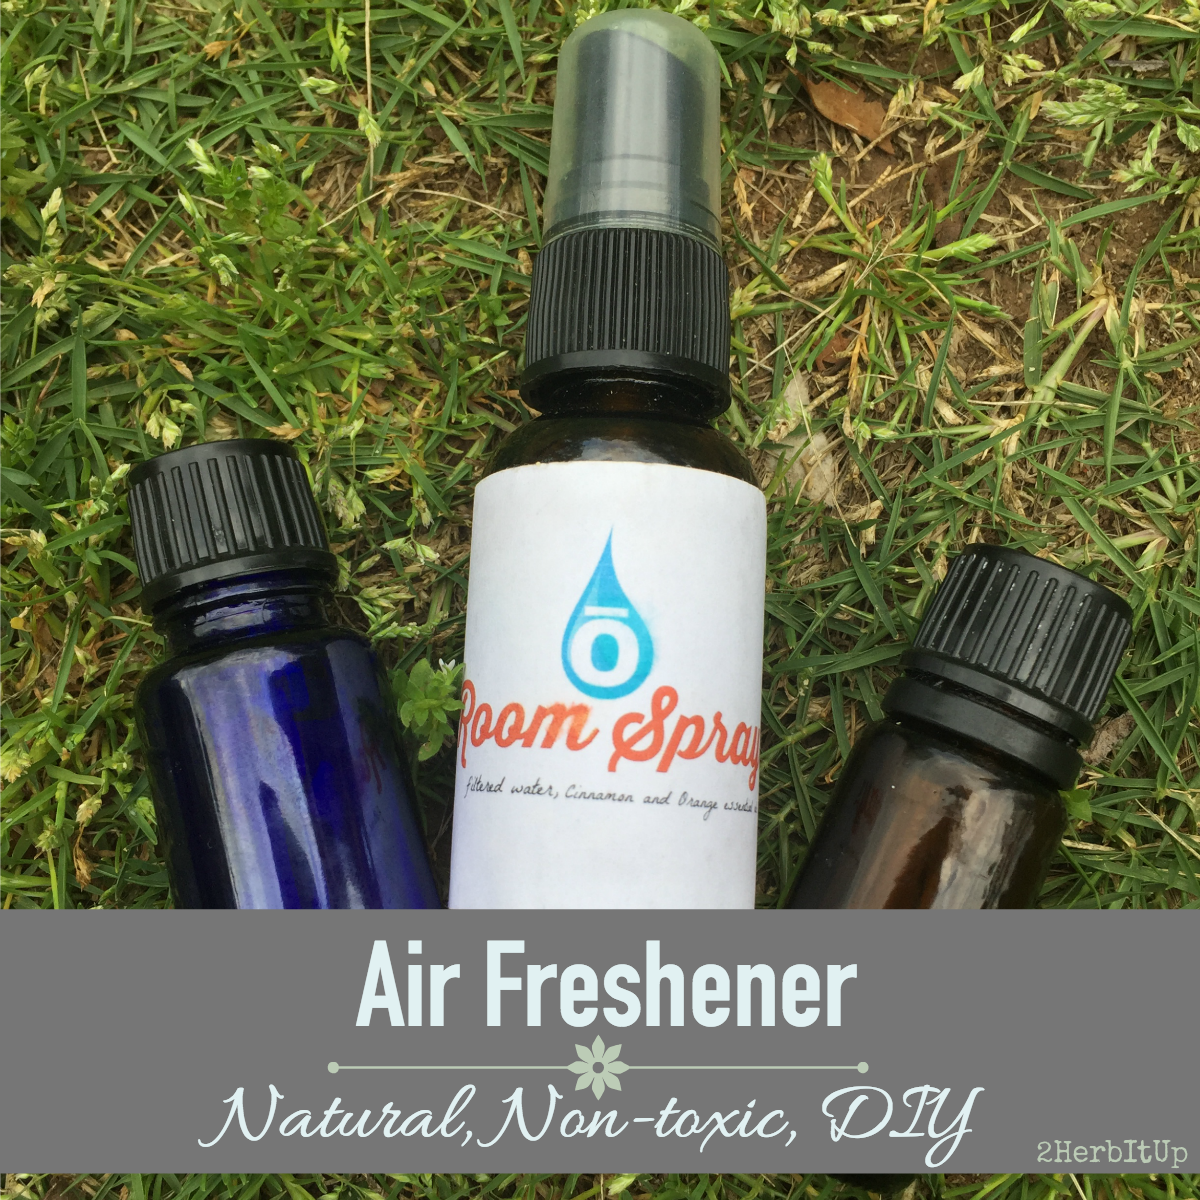 Essential oil sprays can be used as a non-toxic, natural air freshener.